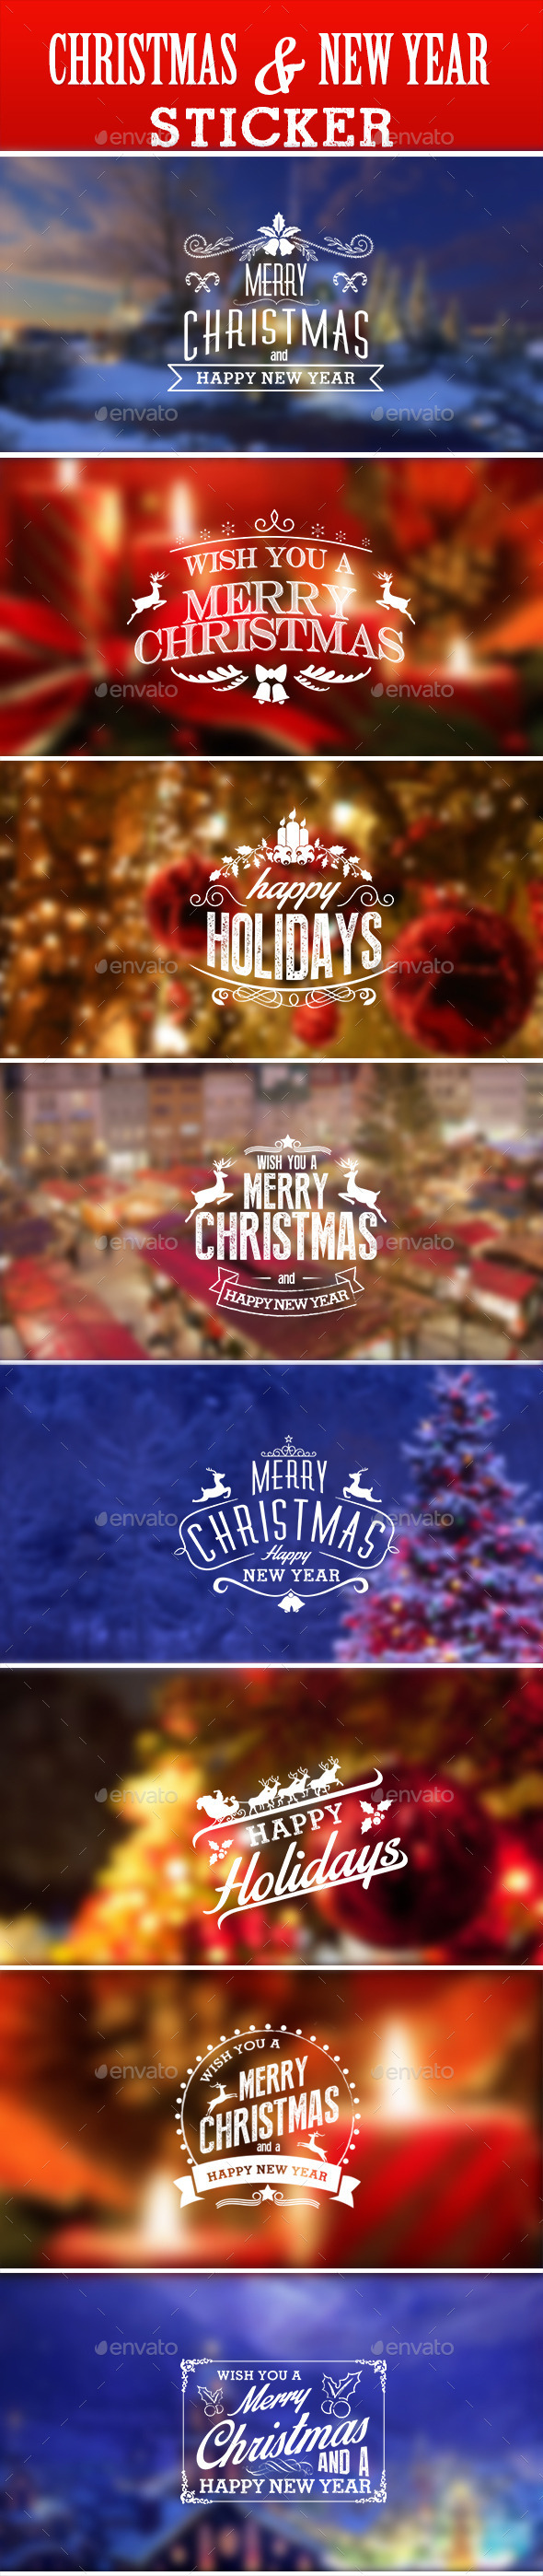 GraphicRiver Christmas & New Year Sticker 9457587